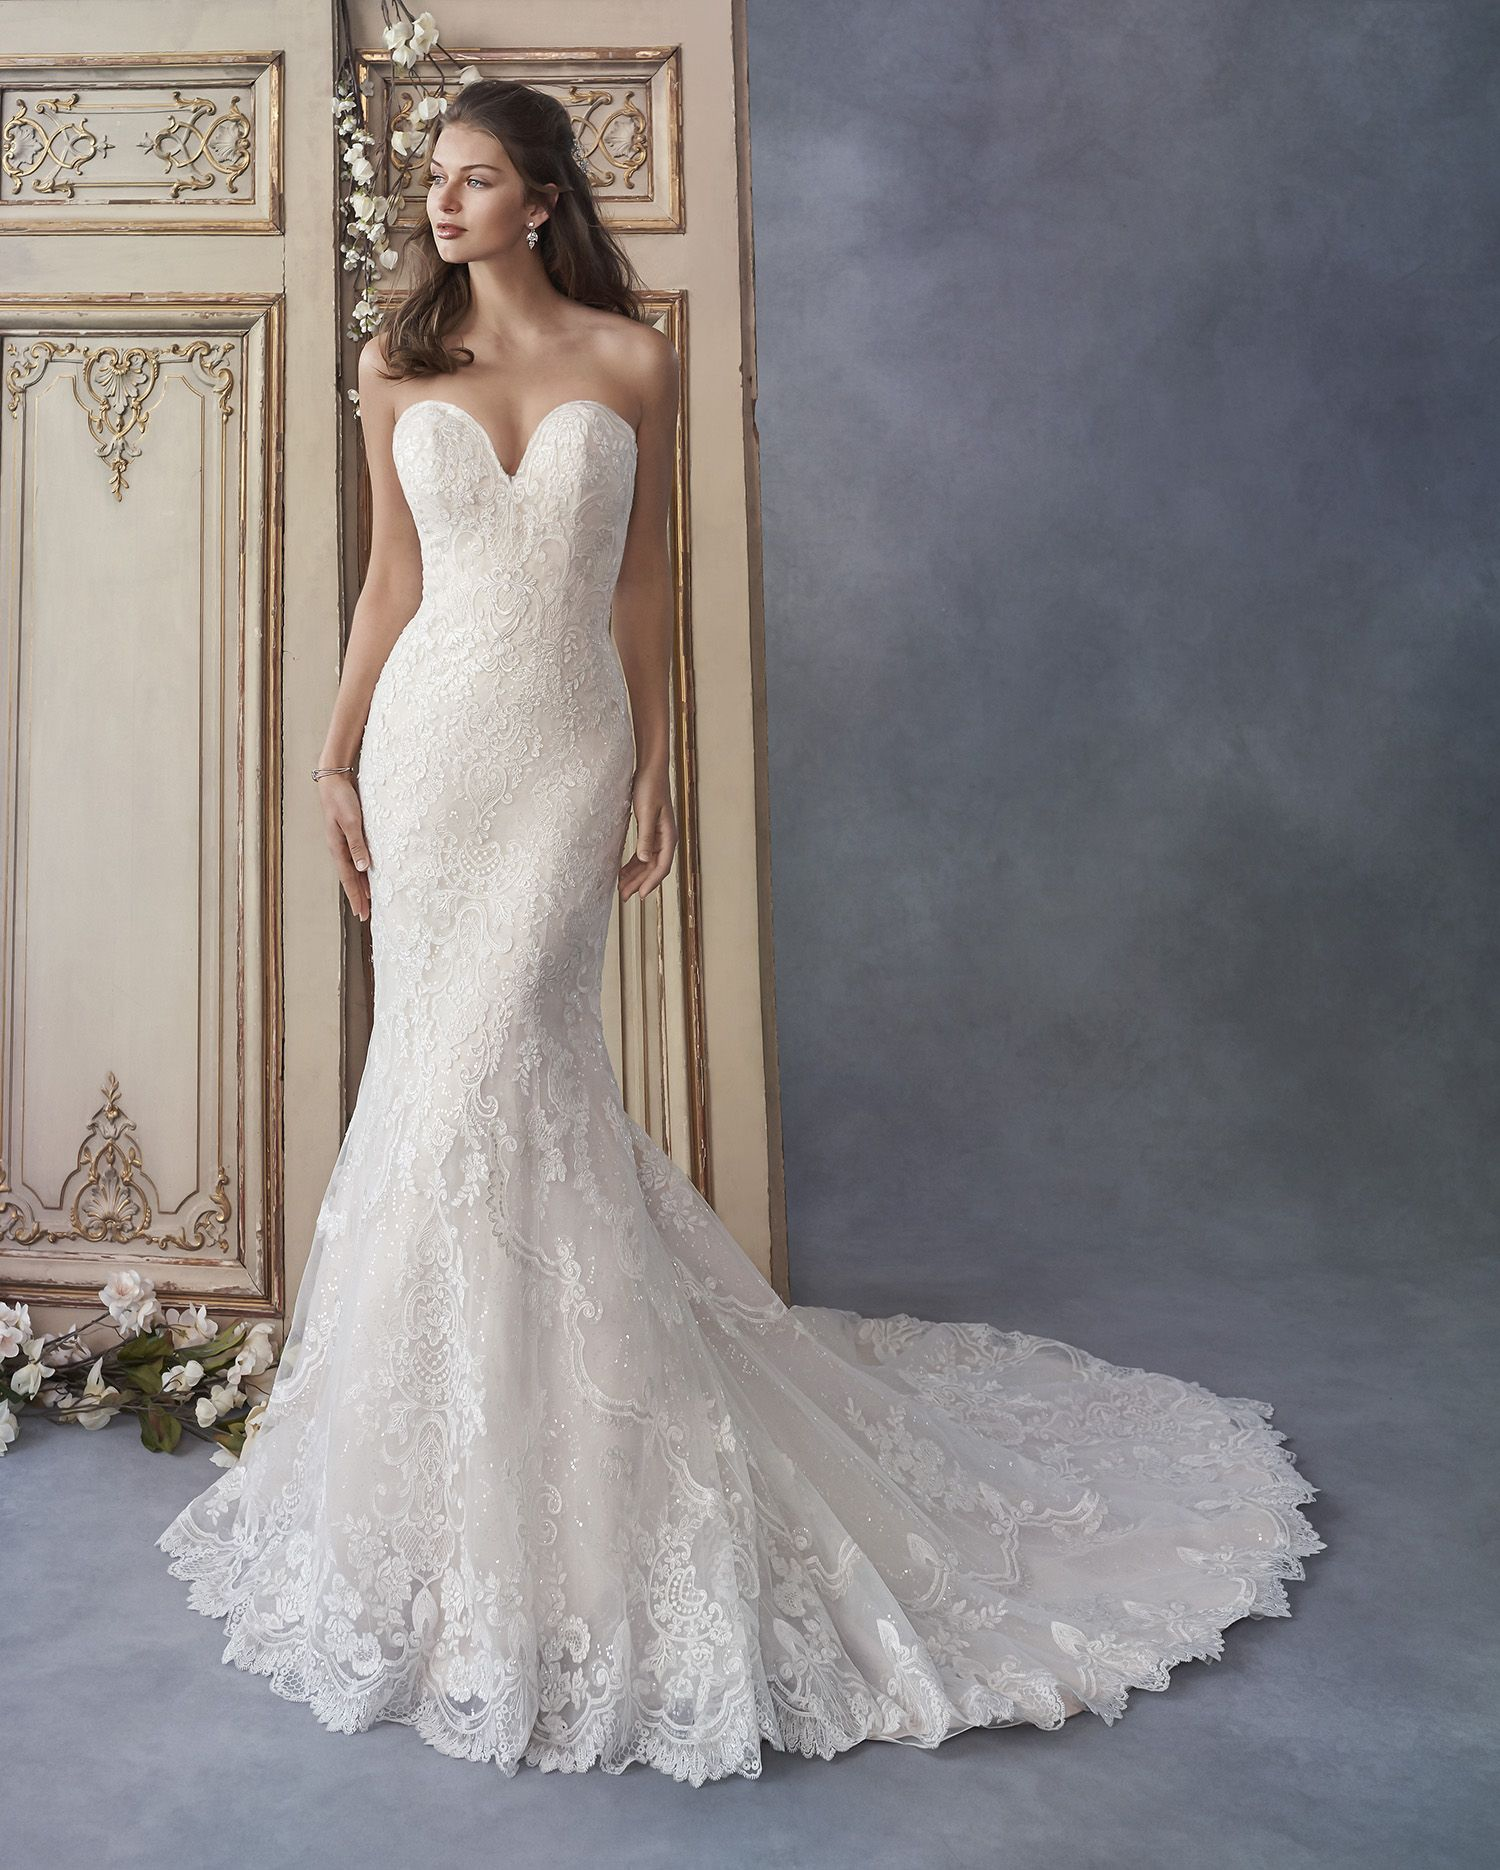 Kenneth Winston 1802 Strapless Fit And Flare Lace Gown With A Sweetheart Neckline A Bling Wedding Dress Kenneth Winston Wedding Dresses Wedding Dresses Lace [ 1870 x 1500 Pixel ]